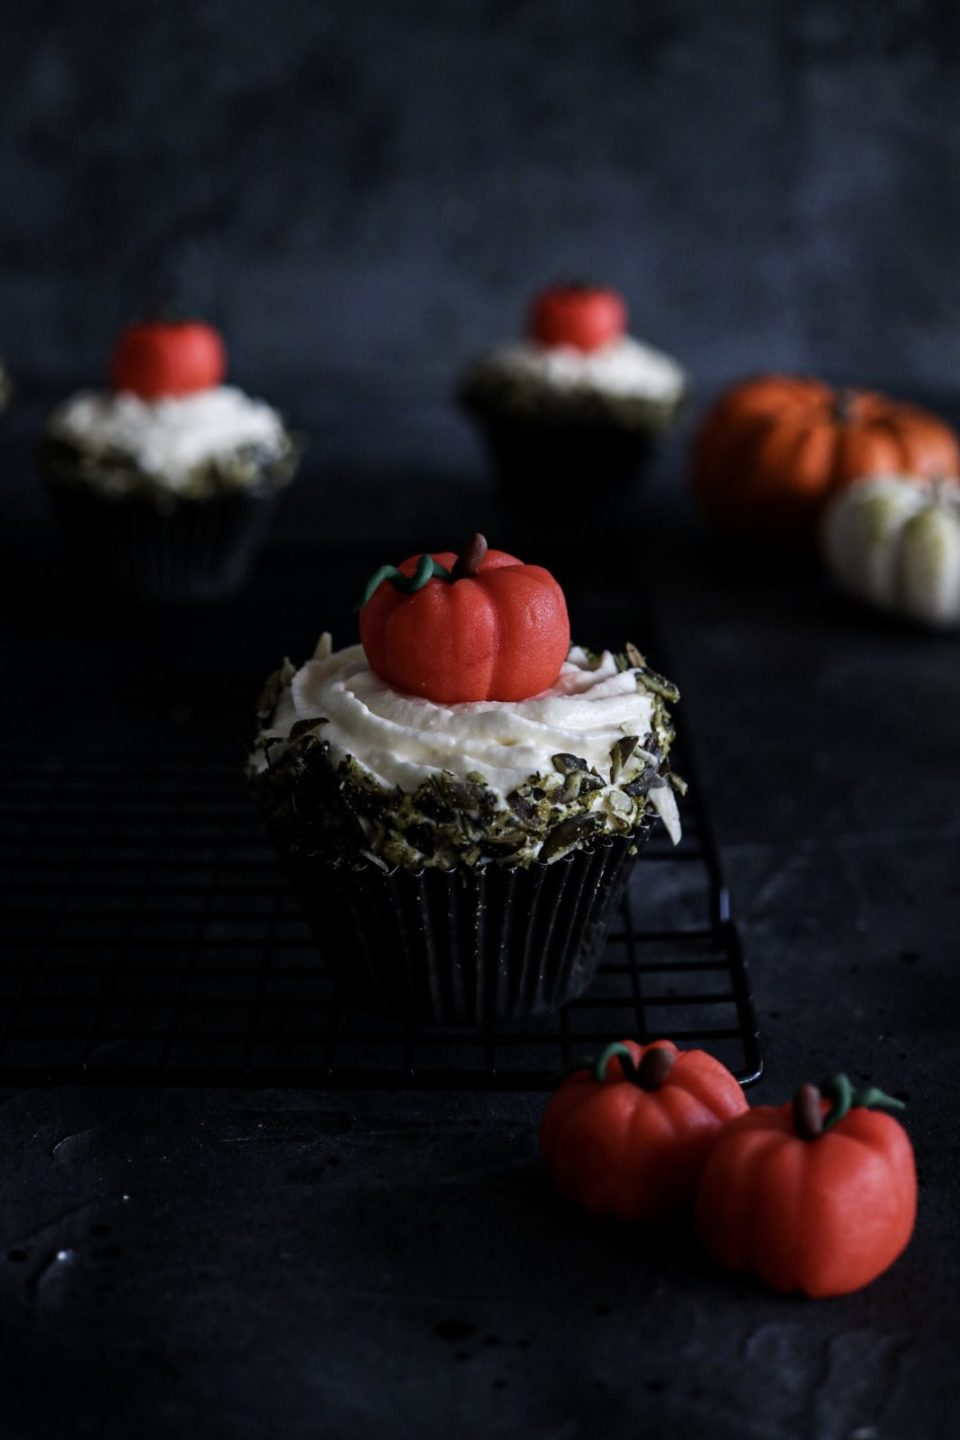 Pumpkin Cupcake with Vanilla cream cheese frosting and self-made marzipan pumpkin